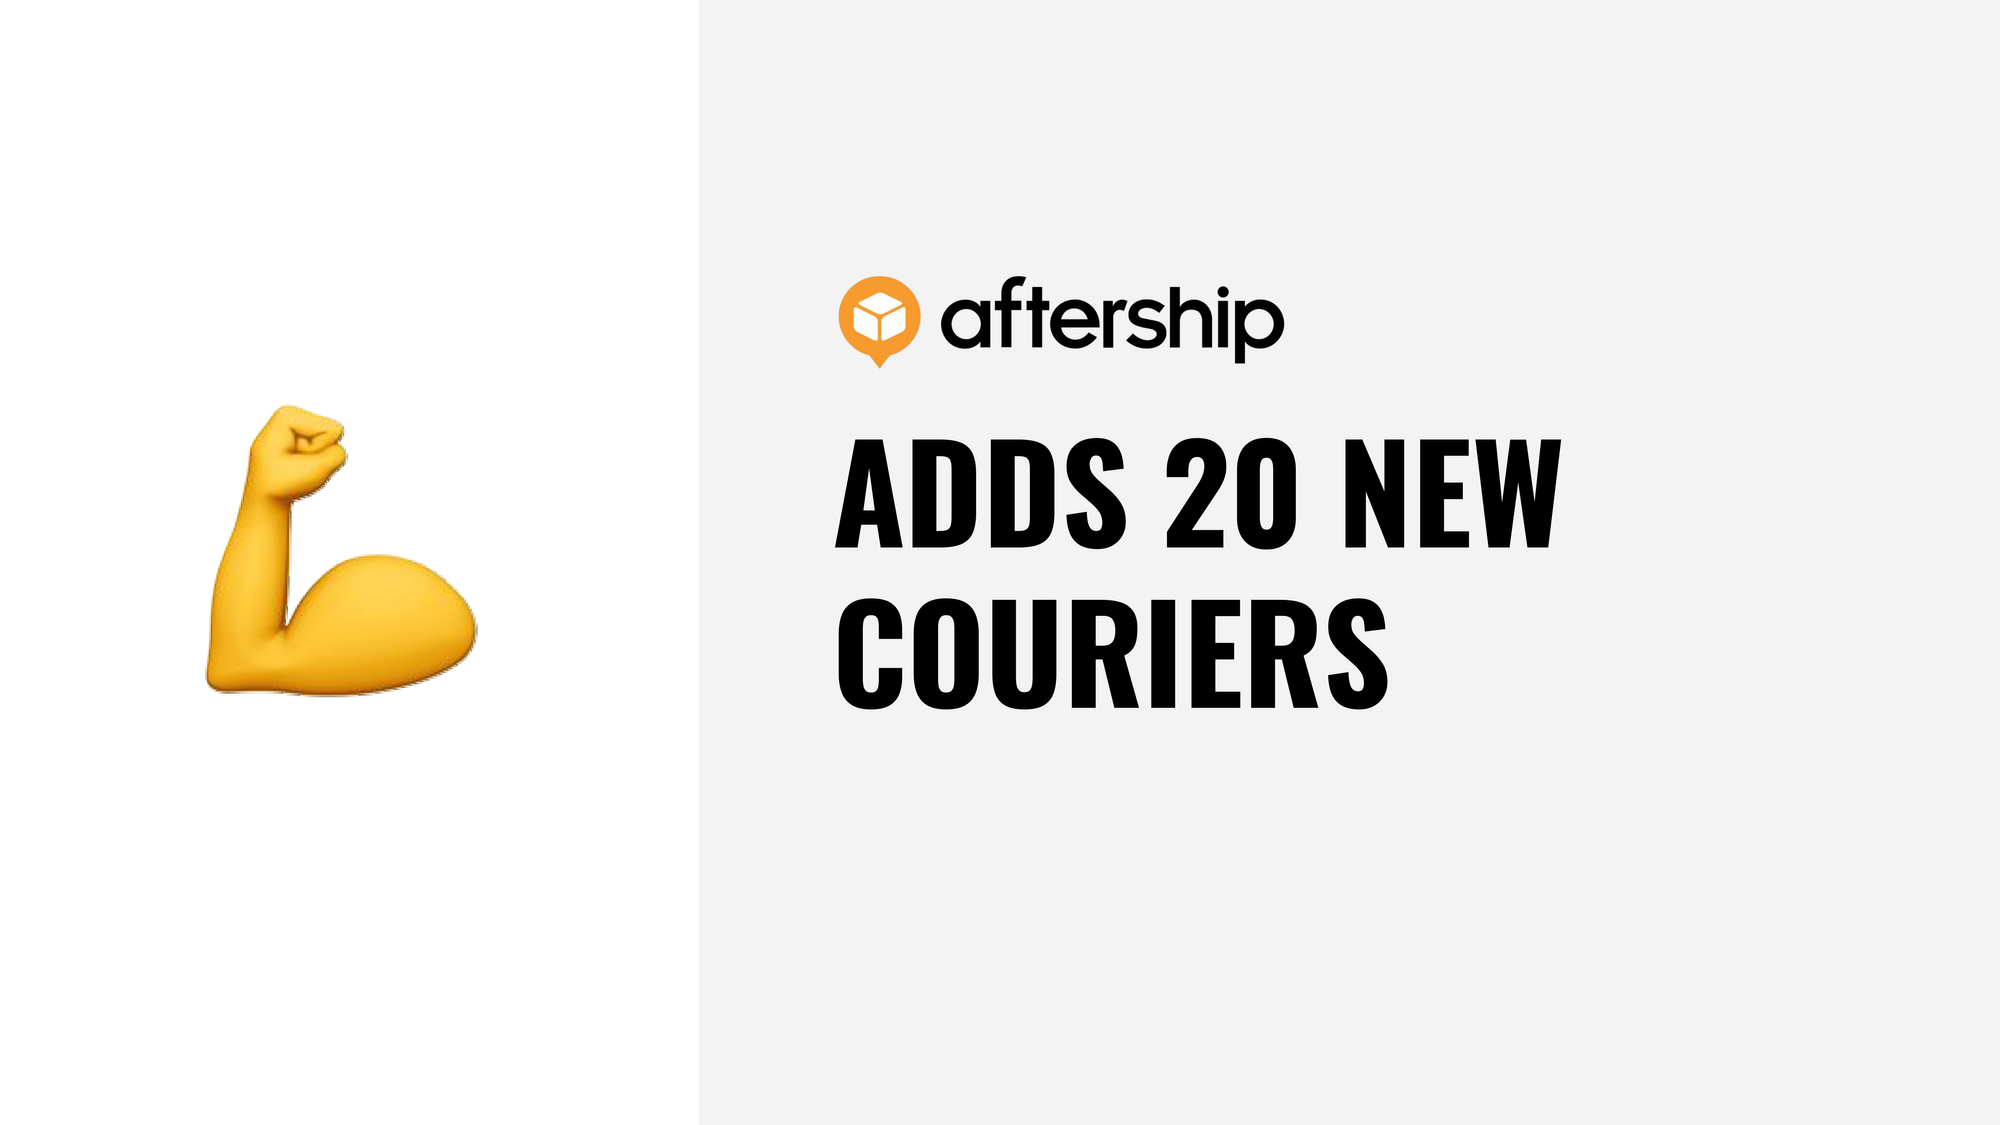 AfterShip adds 20 new couriers this week (26 Oct 2020 to 30 Oct 2020)